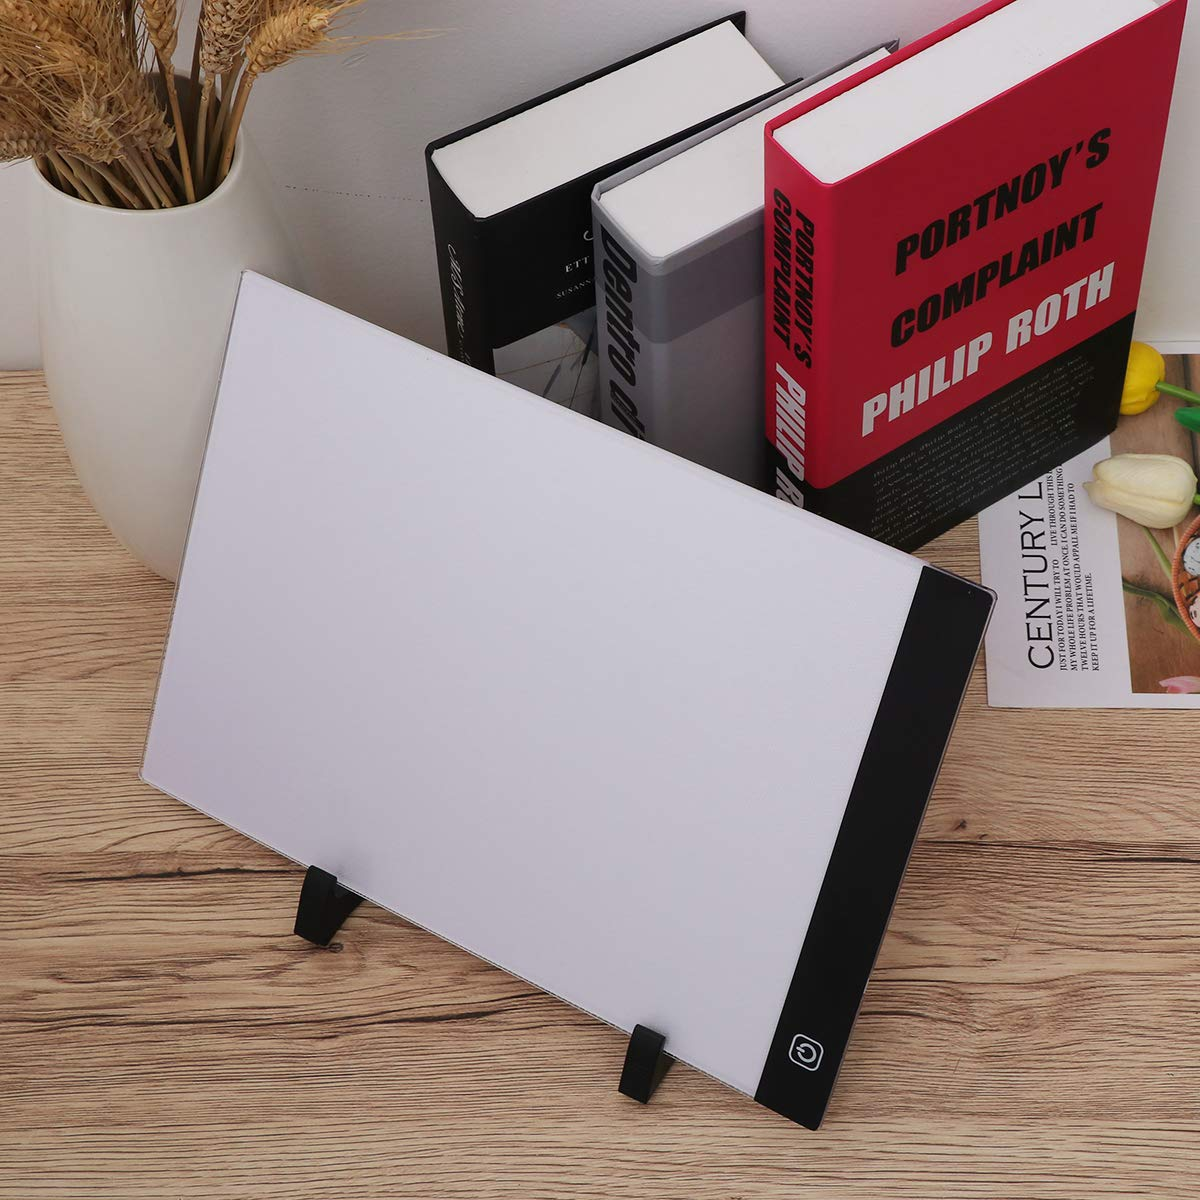 STOBOK Light Drawing Board 1 Set A4 LED Light Box Drawing Sketch Tablet Tracking Artist Backing Plate Diamond Painting Tools for Desktop Table Easel Craft Workstation by STOBOK (Image #7)